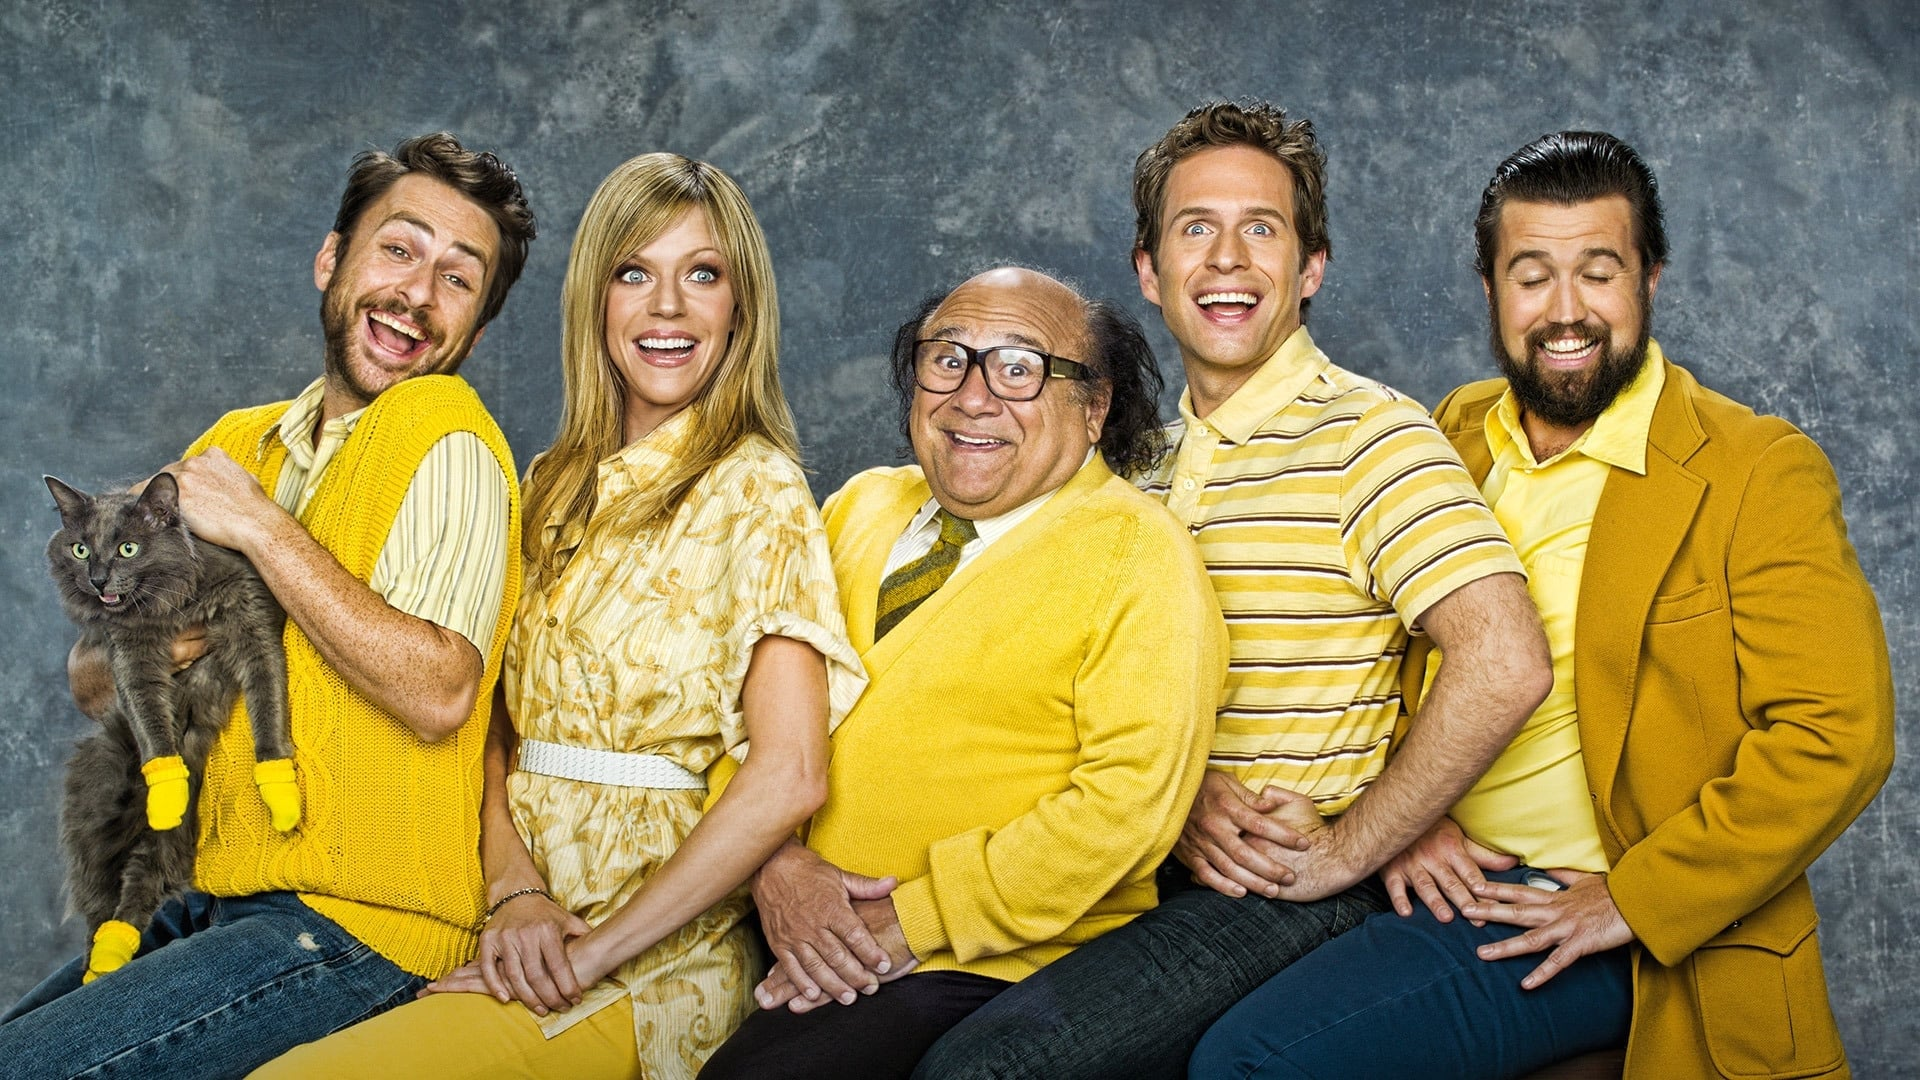 It's Always Sunny in Philadelphia - Season 0 Episode 38 : Frank Reynolds' How to Be a Warthog